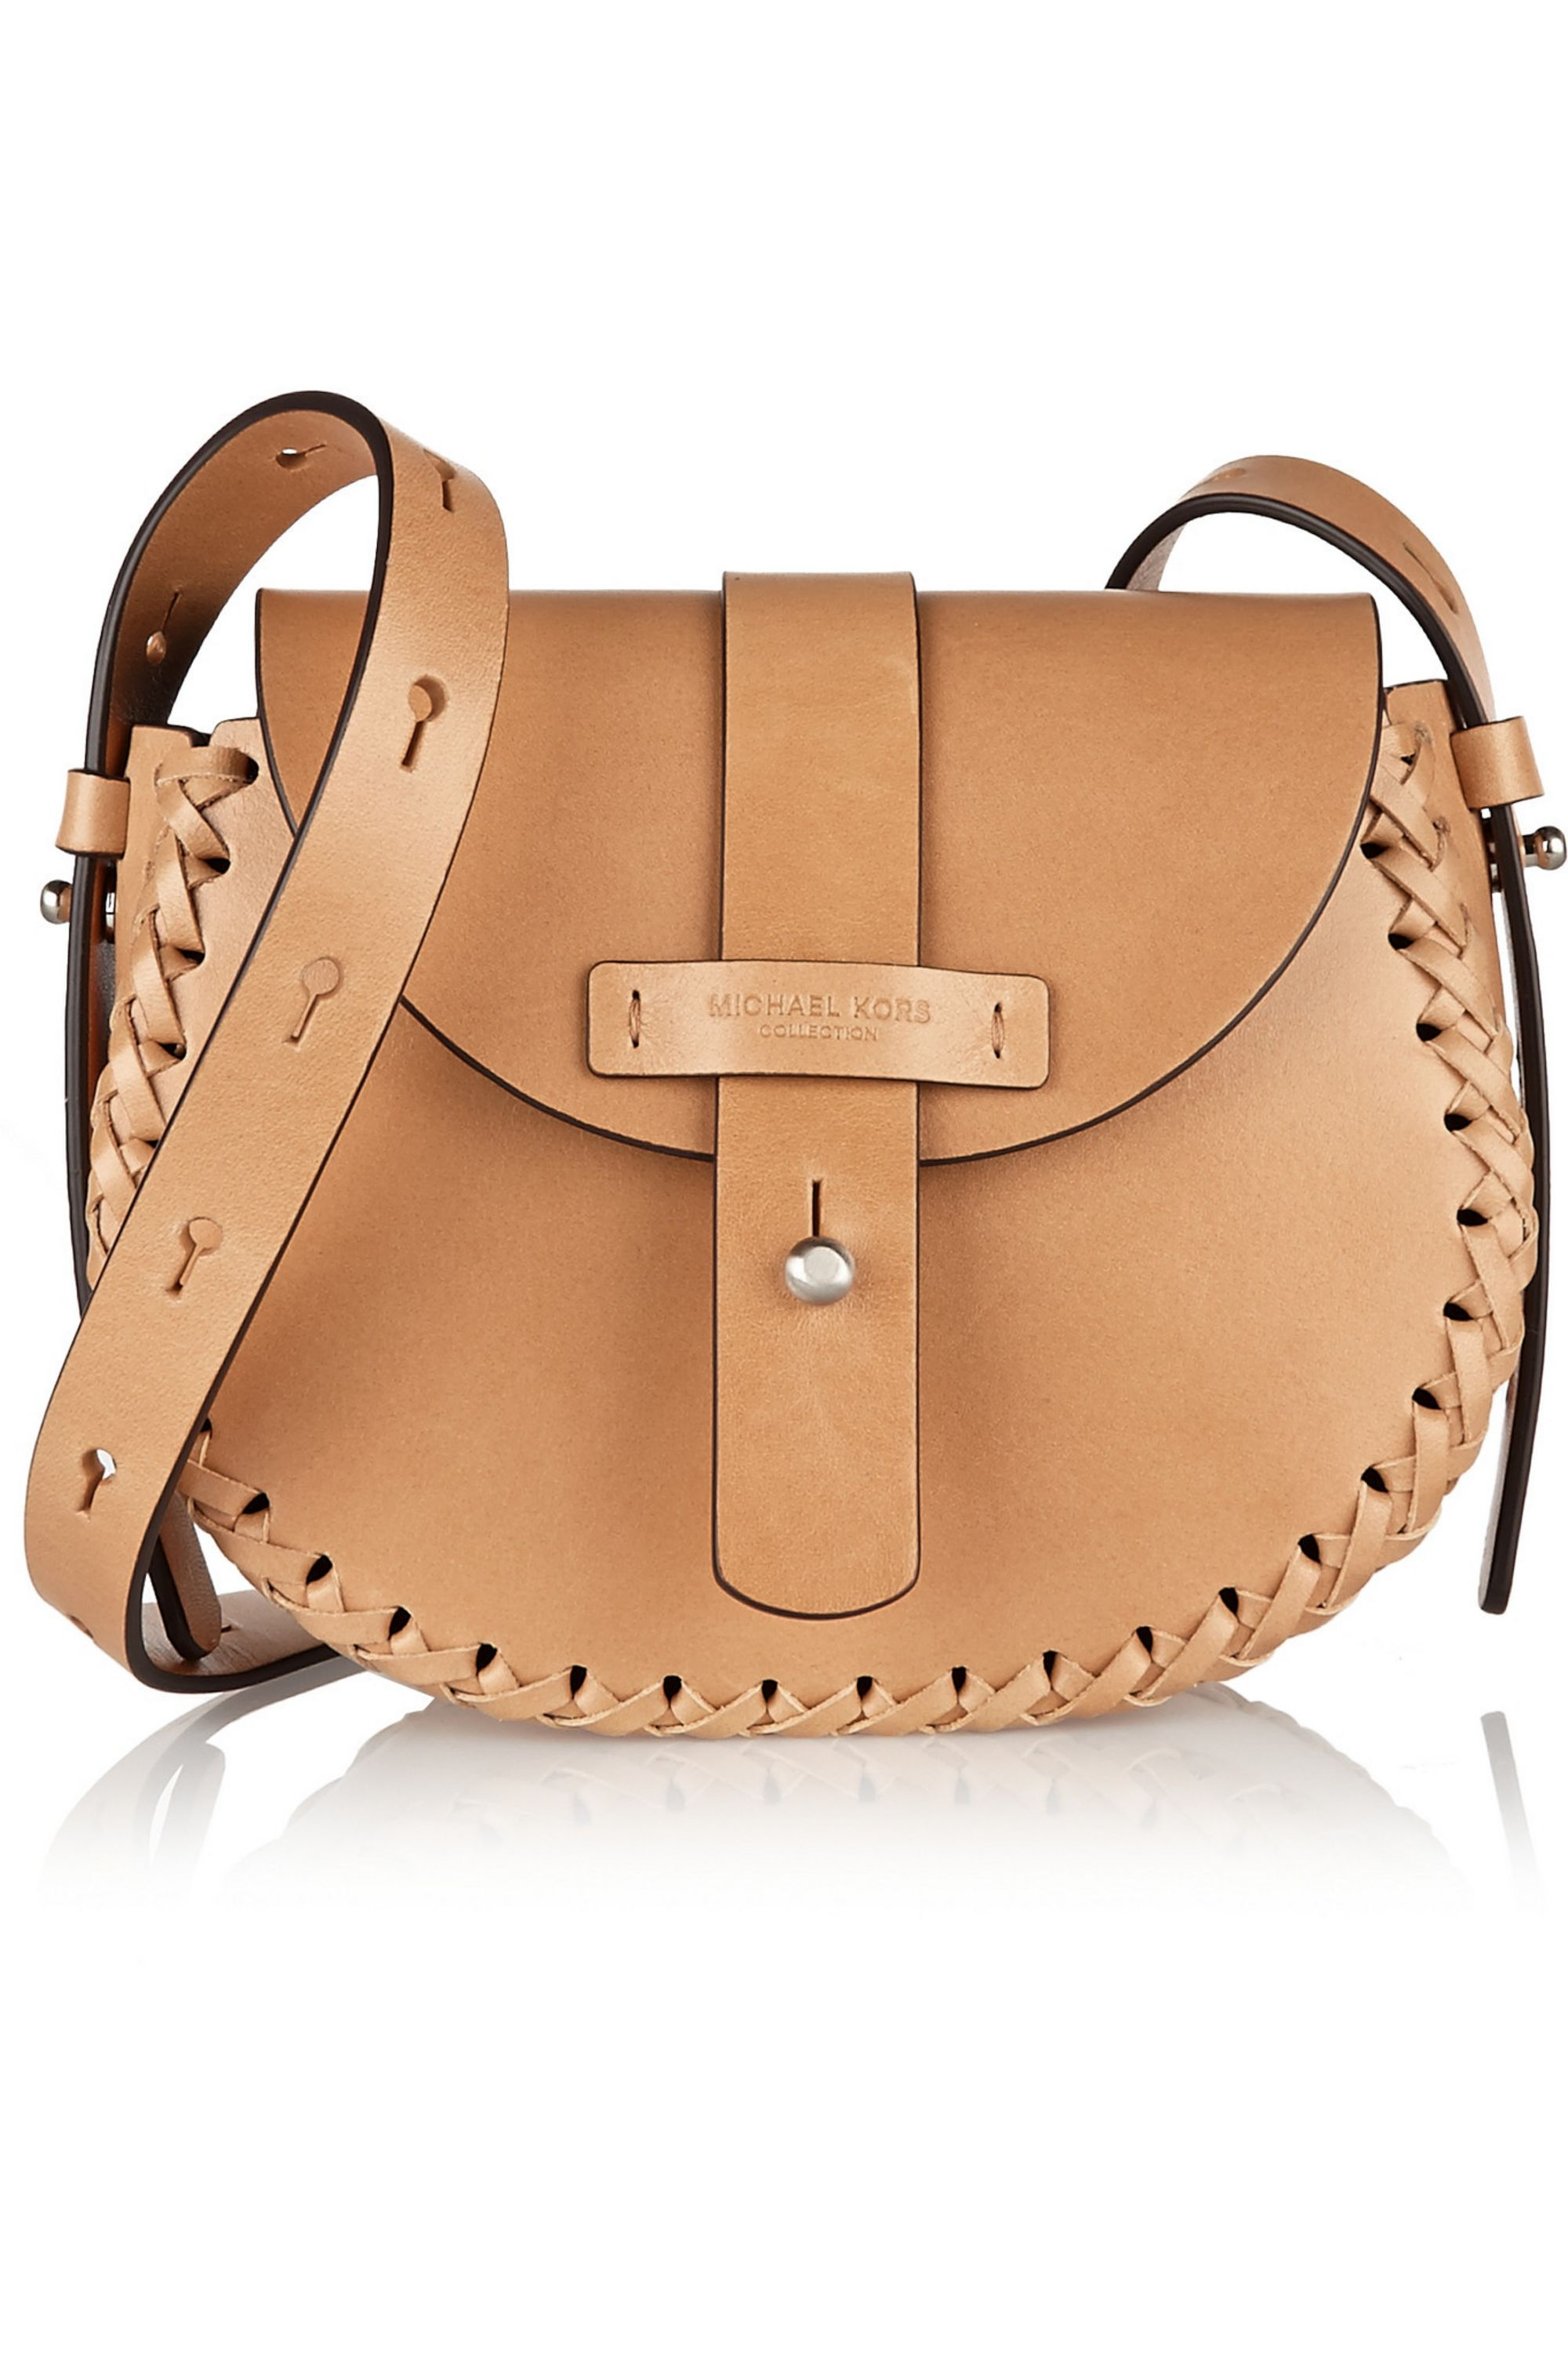 Michael Kors Collection Claire whipstitched leather shoulder bag